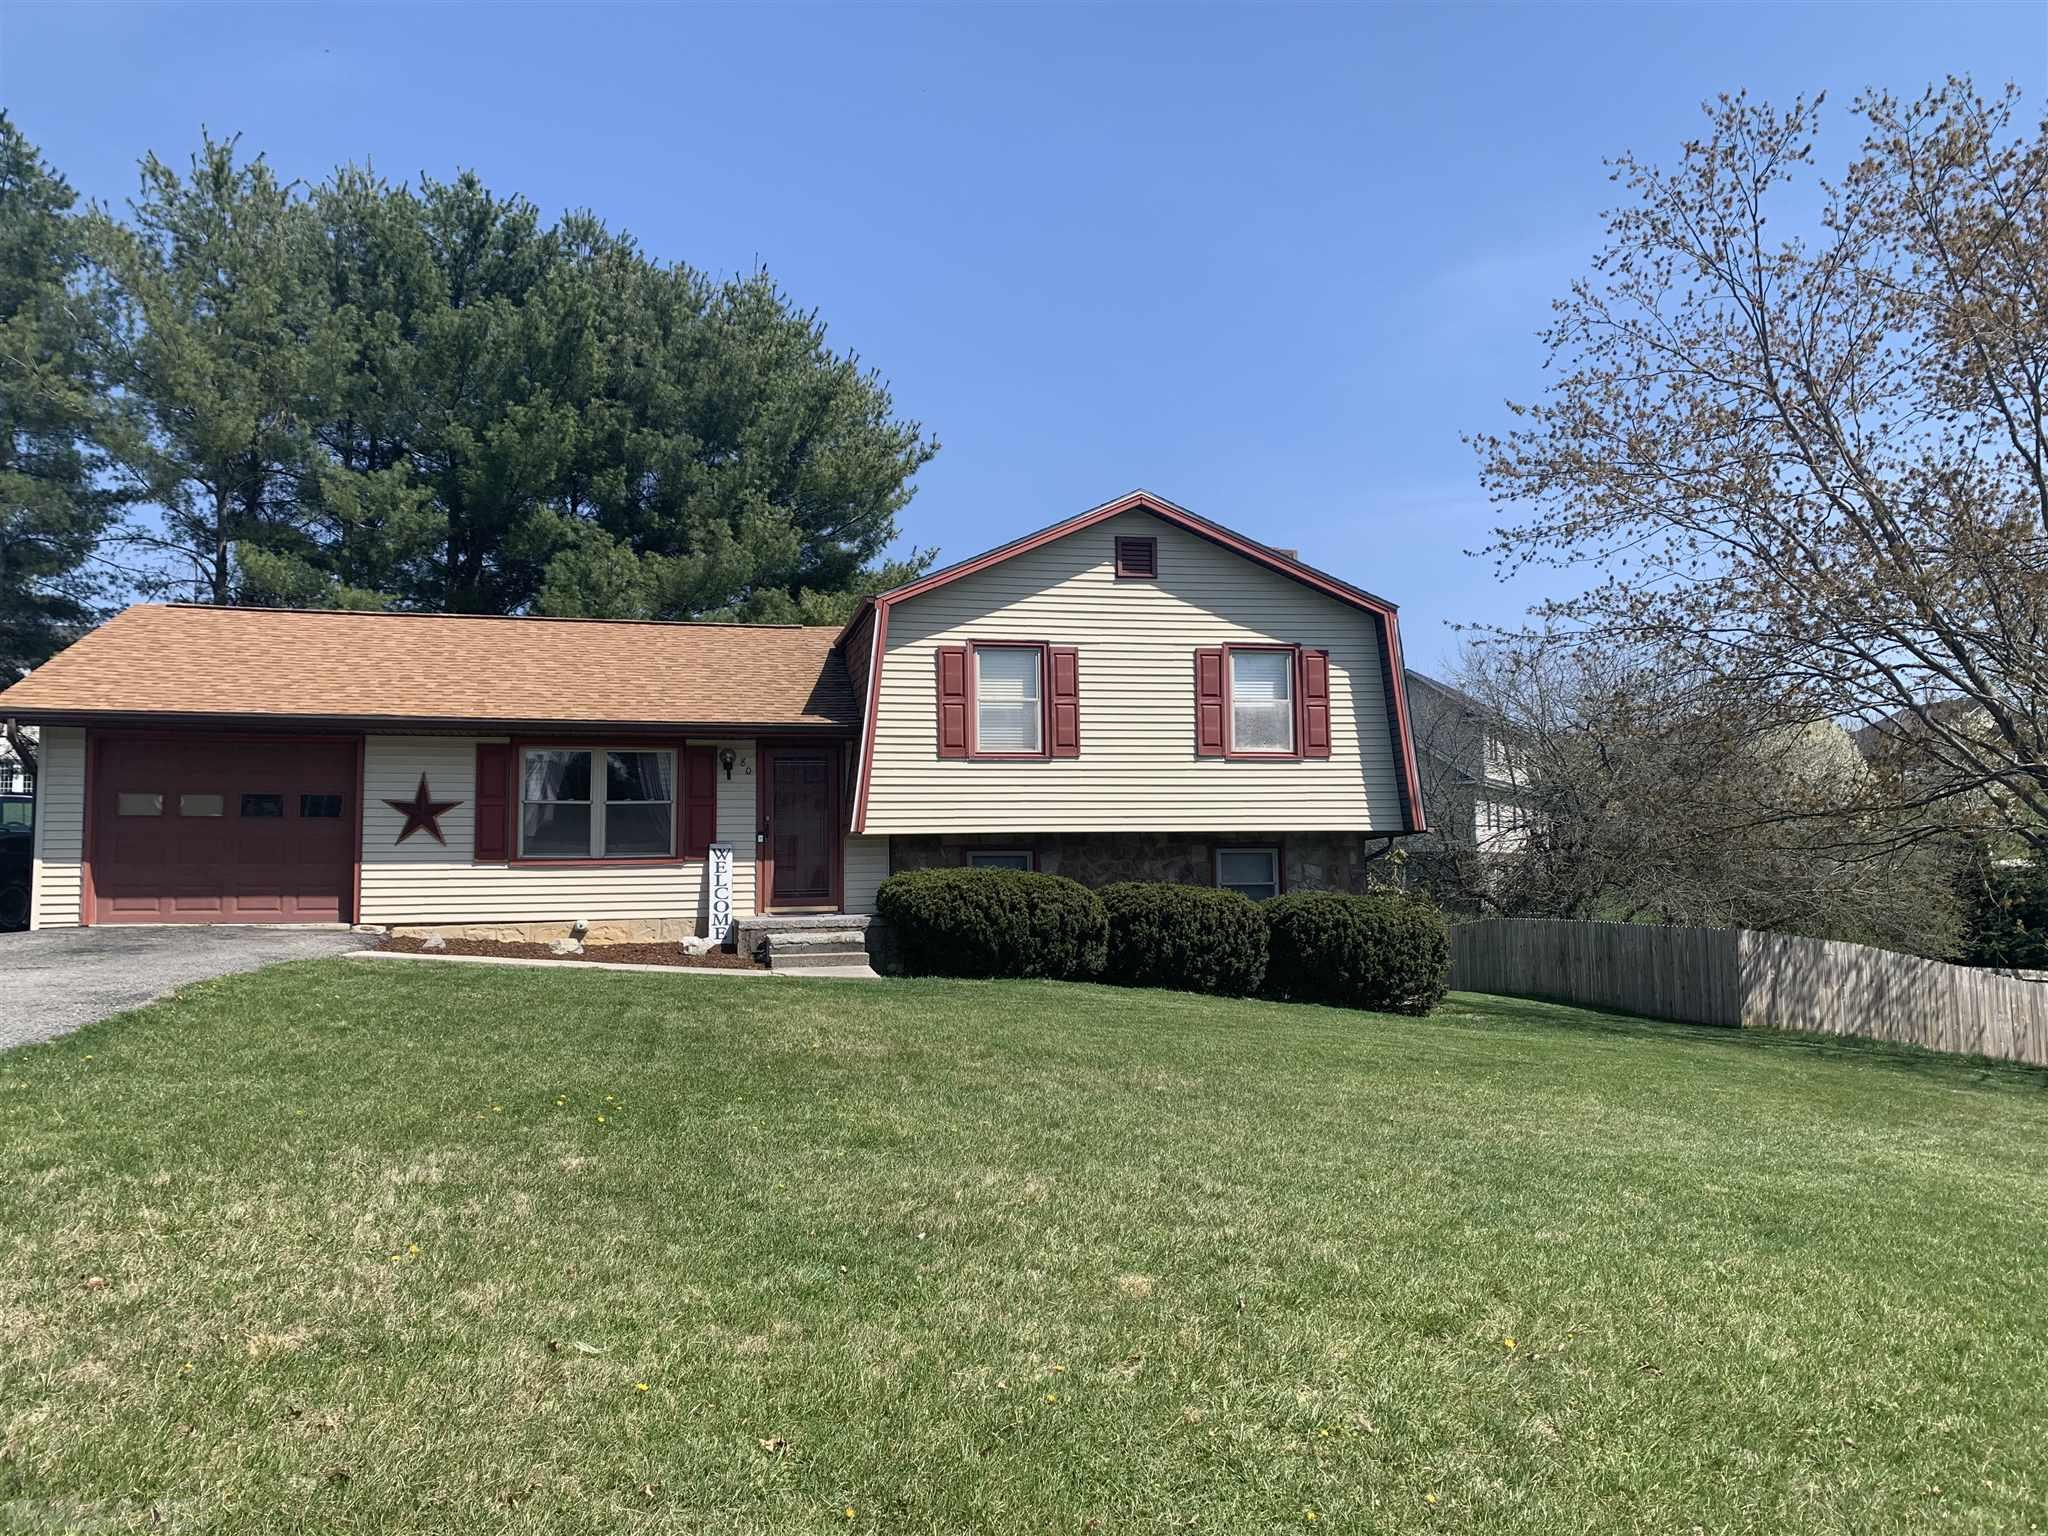 This beautiful home is move-in ready.  It features 3 bedrooms, 2.5 baths and over 2,200 square feet.  New deck in late 2018, new roof in the summer of 2017. Located in Windmill Hills, it close to shopping, schools, VT and I 81. Imagine watching the kids play in the back yard while you BBQ on your new deck.   If you're looking for the perfect home for your family.  This is it.